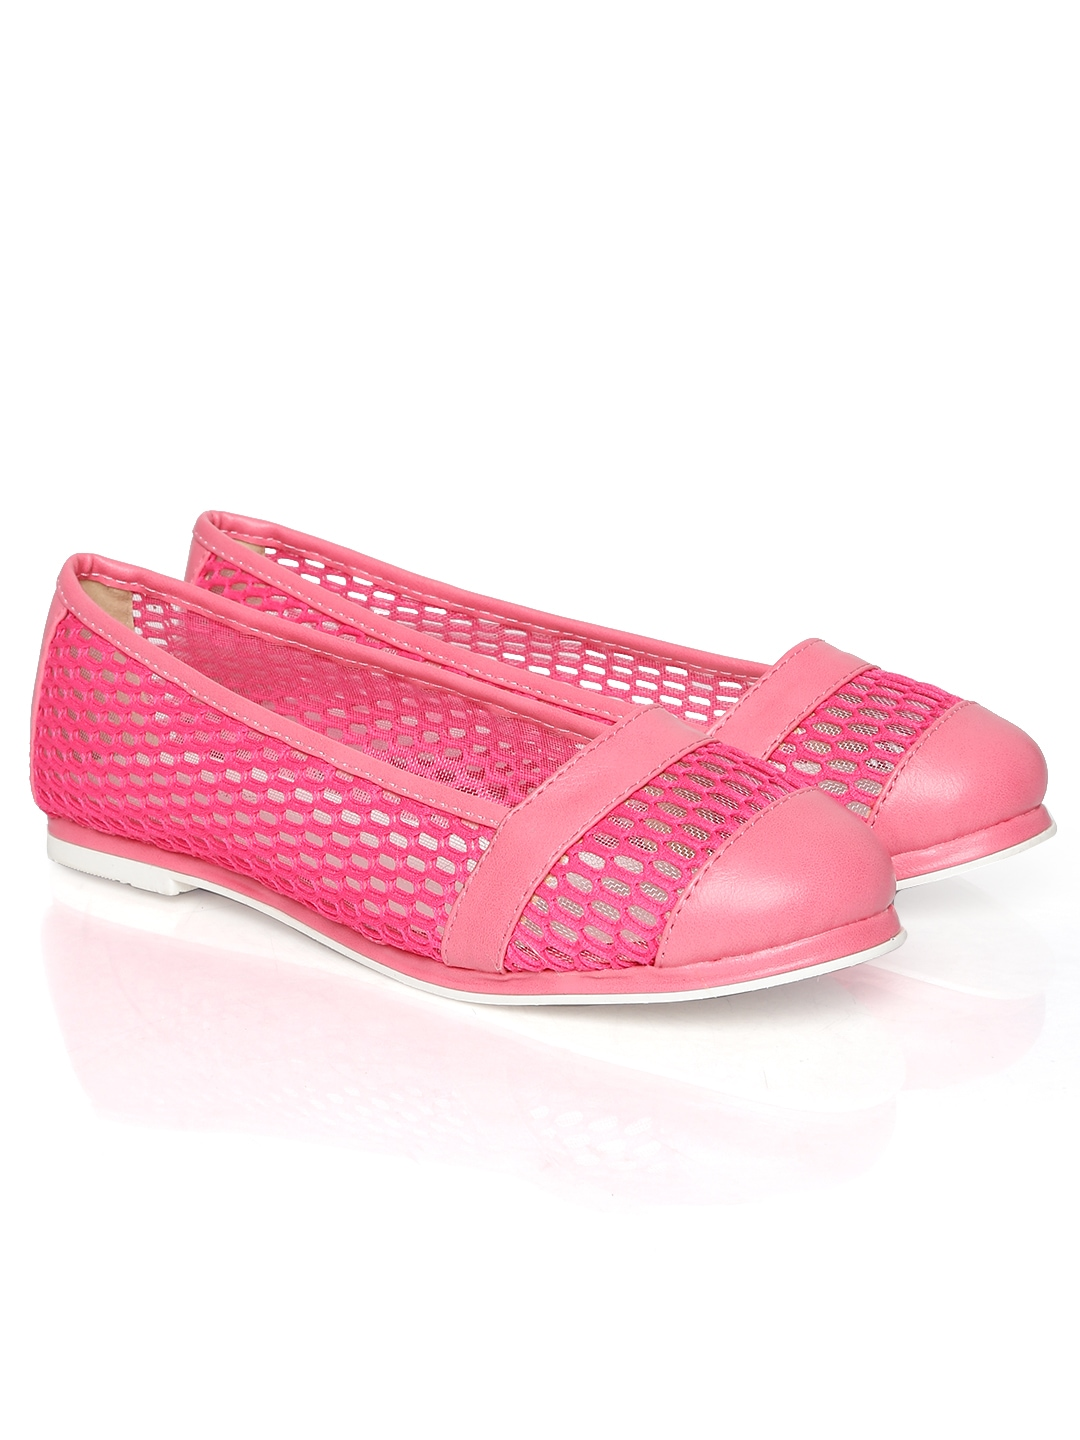 myntra dressberry pink flat shoes 648617 buy